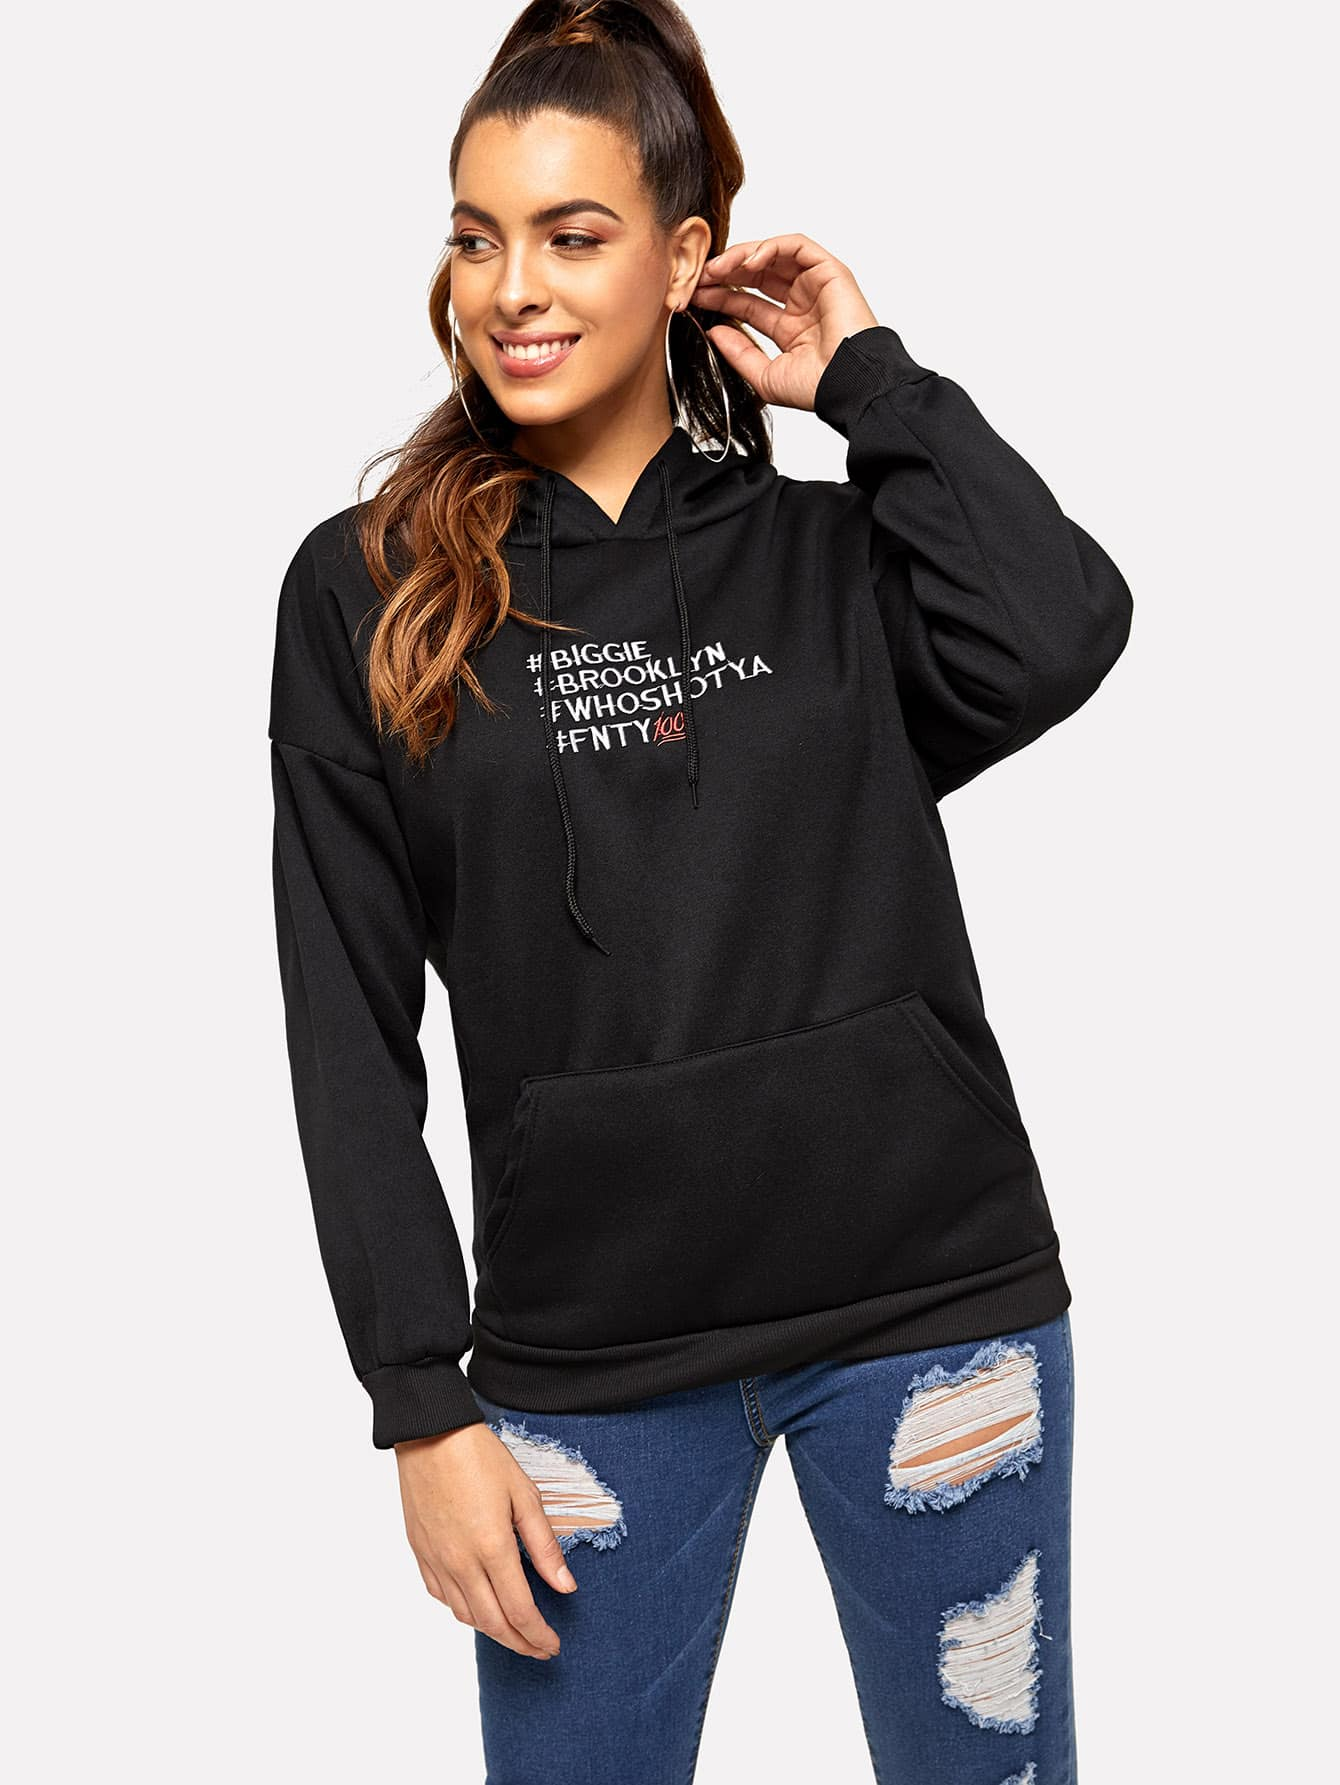 Letter Embroidered Kangaroo Pocket Drop Shoulder Hoodie Letter Embroidered Kangaroo Pocket Drop Shoulder Hoodie